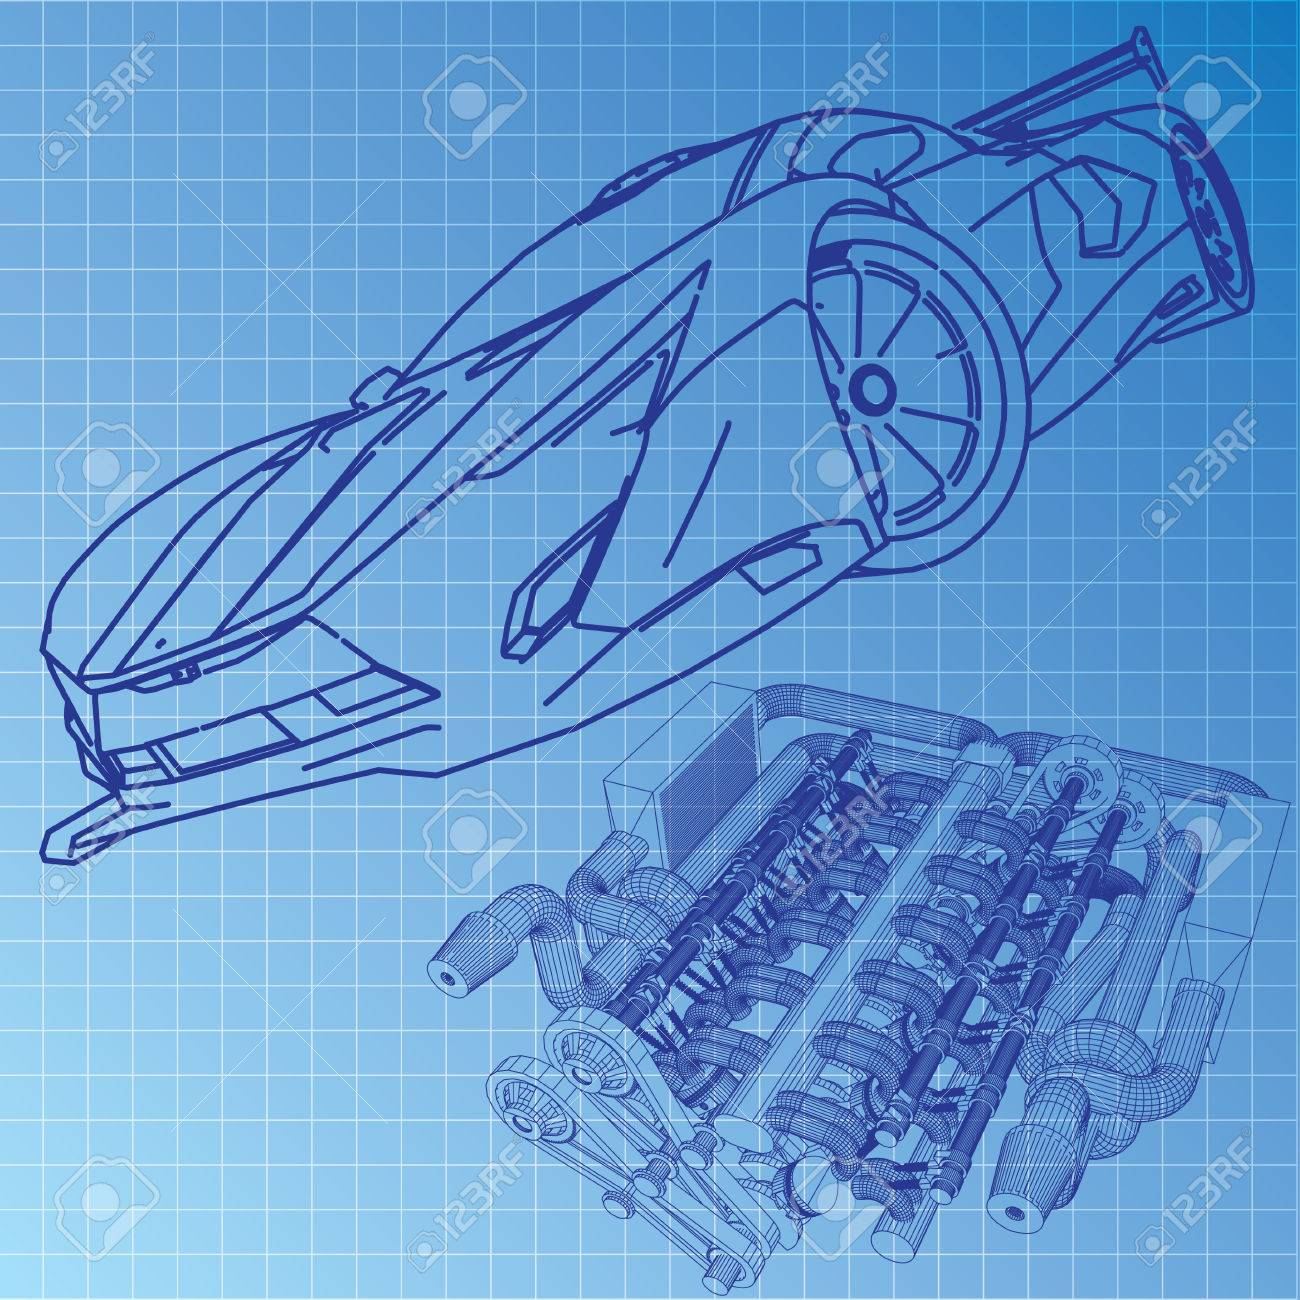 Sports car sketch blueprint royalty free cliparts vectors and sports car sketch blueprint stock vector 29229254 malvernweather Image collections